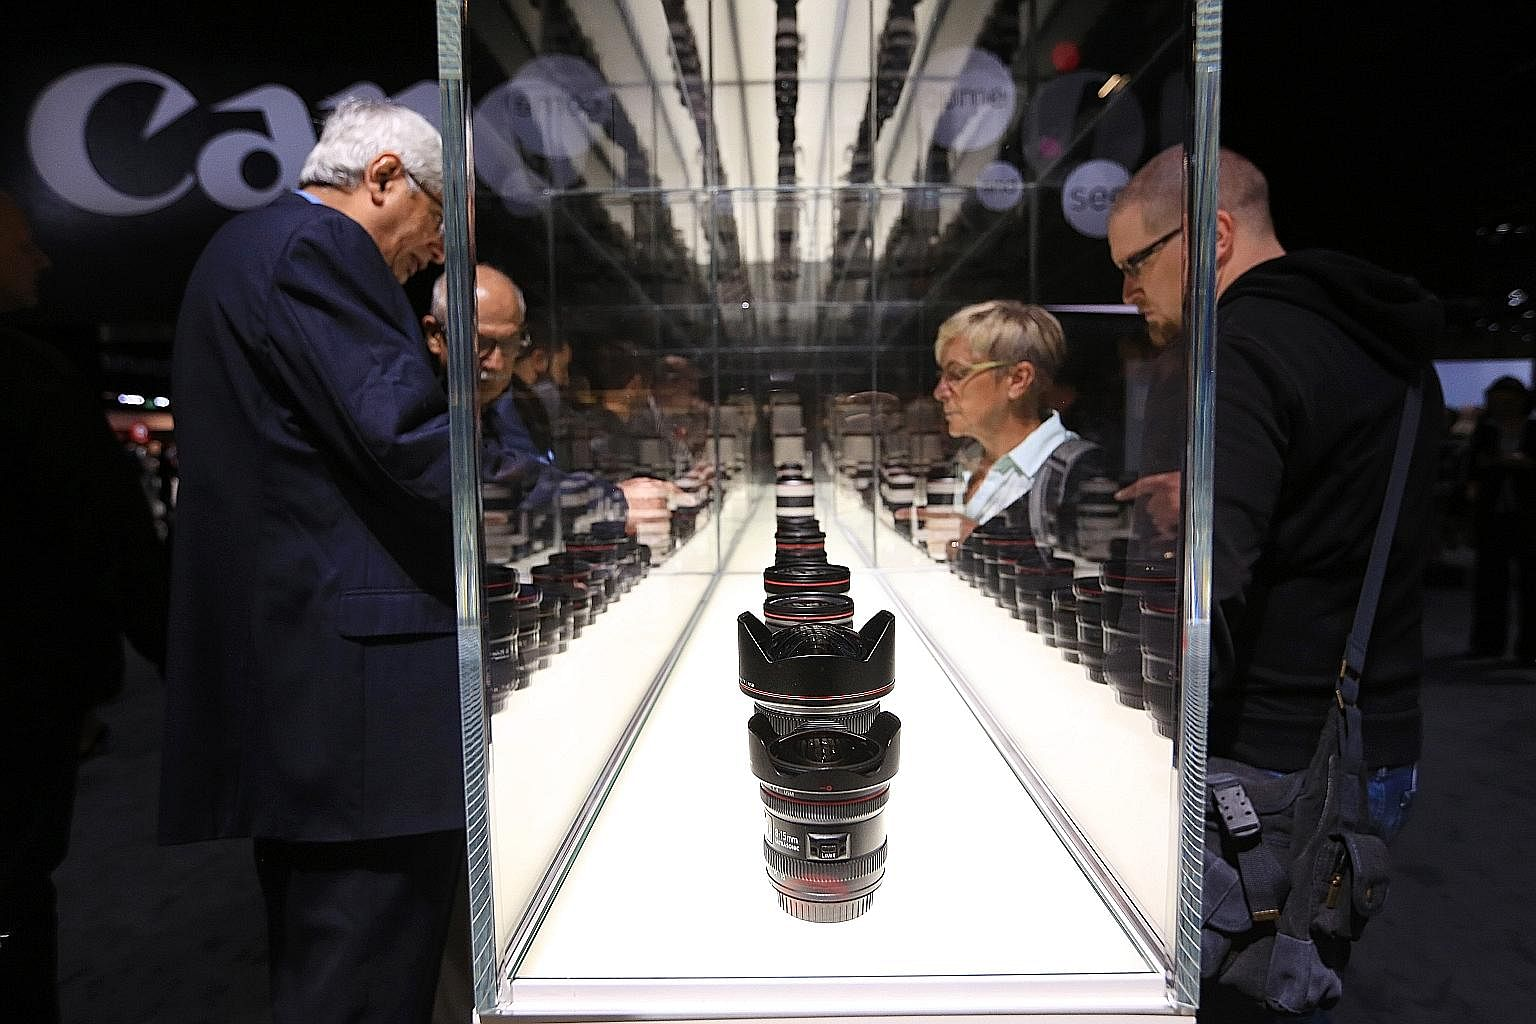 Visitors browsing a display containing a selection of Canon camera lenses during the Photokina photography trade fair in Cologne on Sept 20. At the Photokina photography trade fair, Sony unveileda the the a99 II, the long-awaited successor to